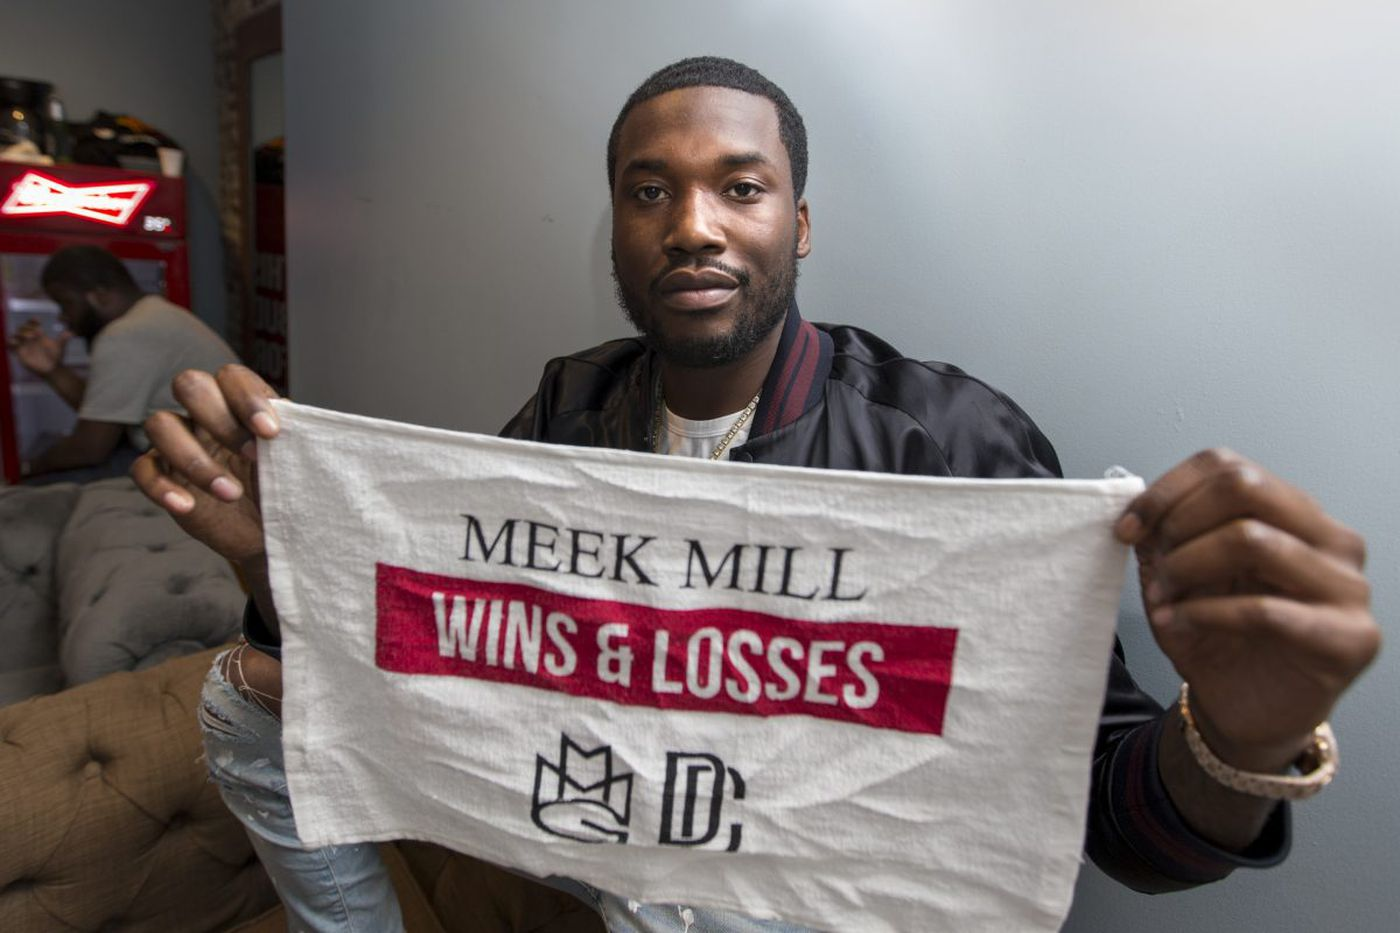 Meek Mill is going to jail. Is his music career over?